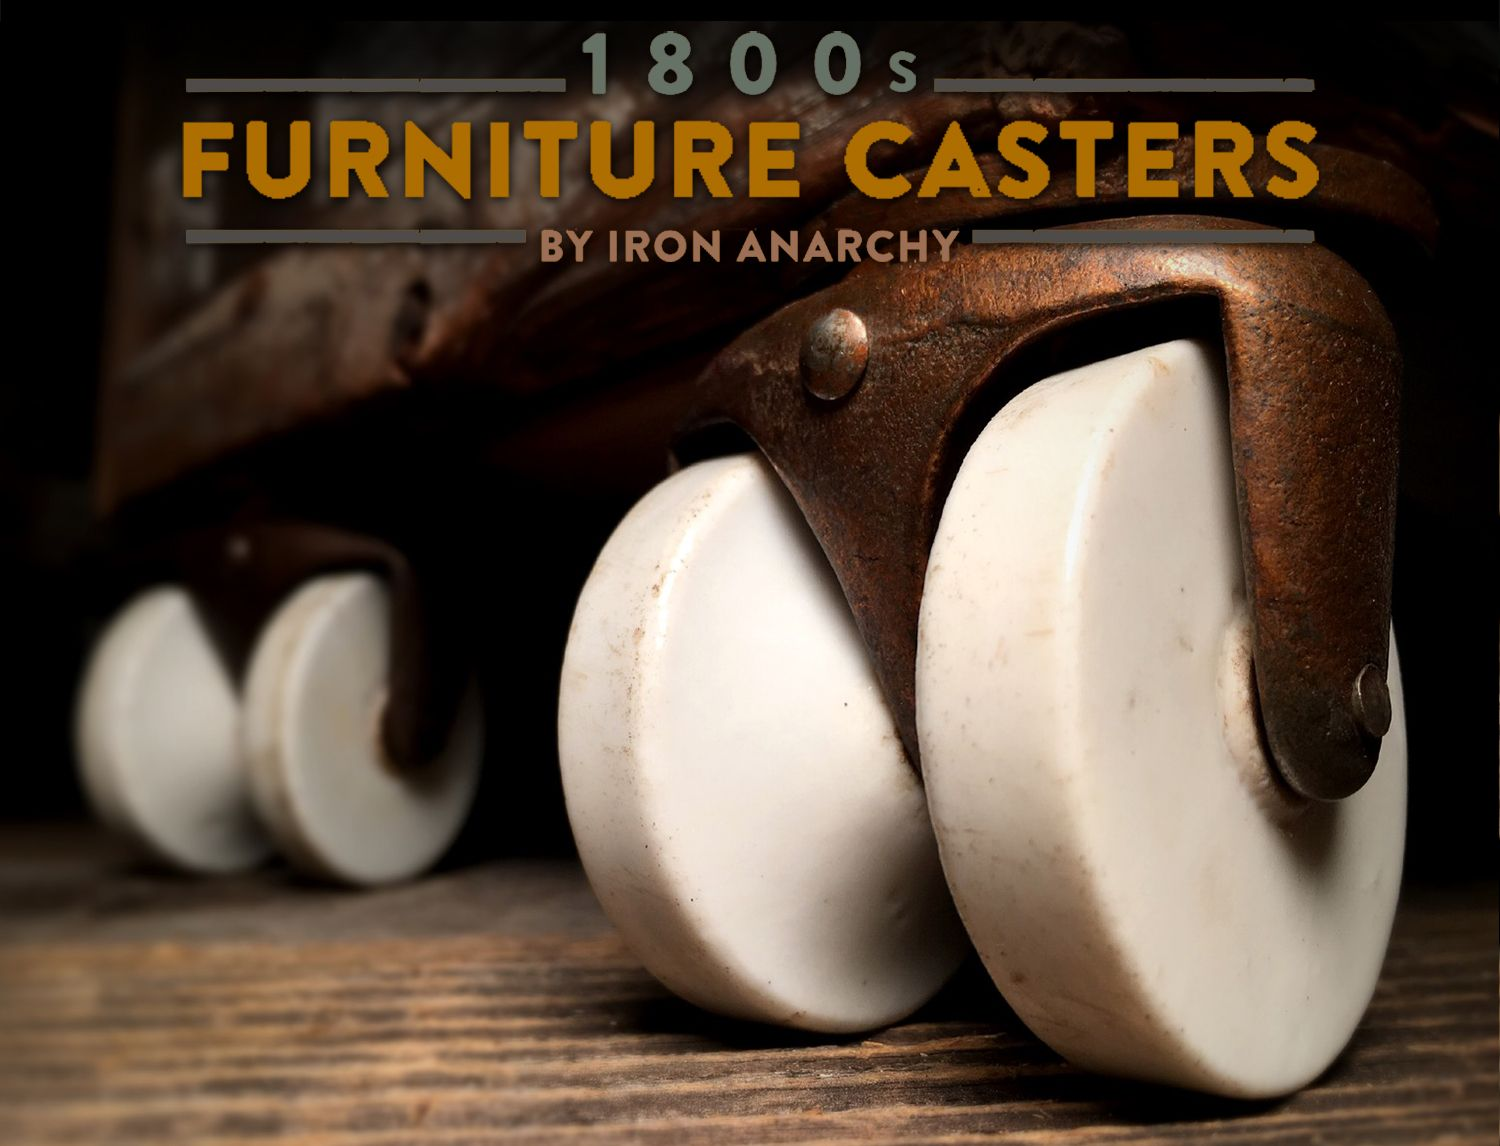 Antique Porcelain Casters Furniture Casters Rustic Furniture Diy Leather Living Room Furniture